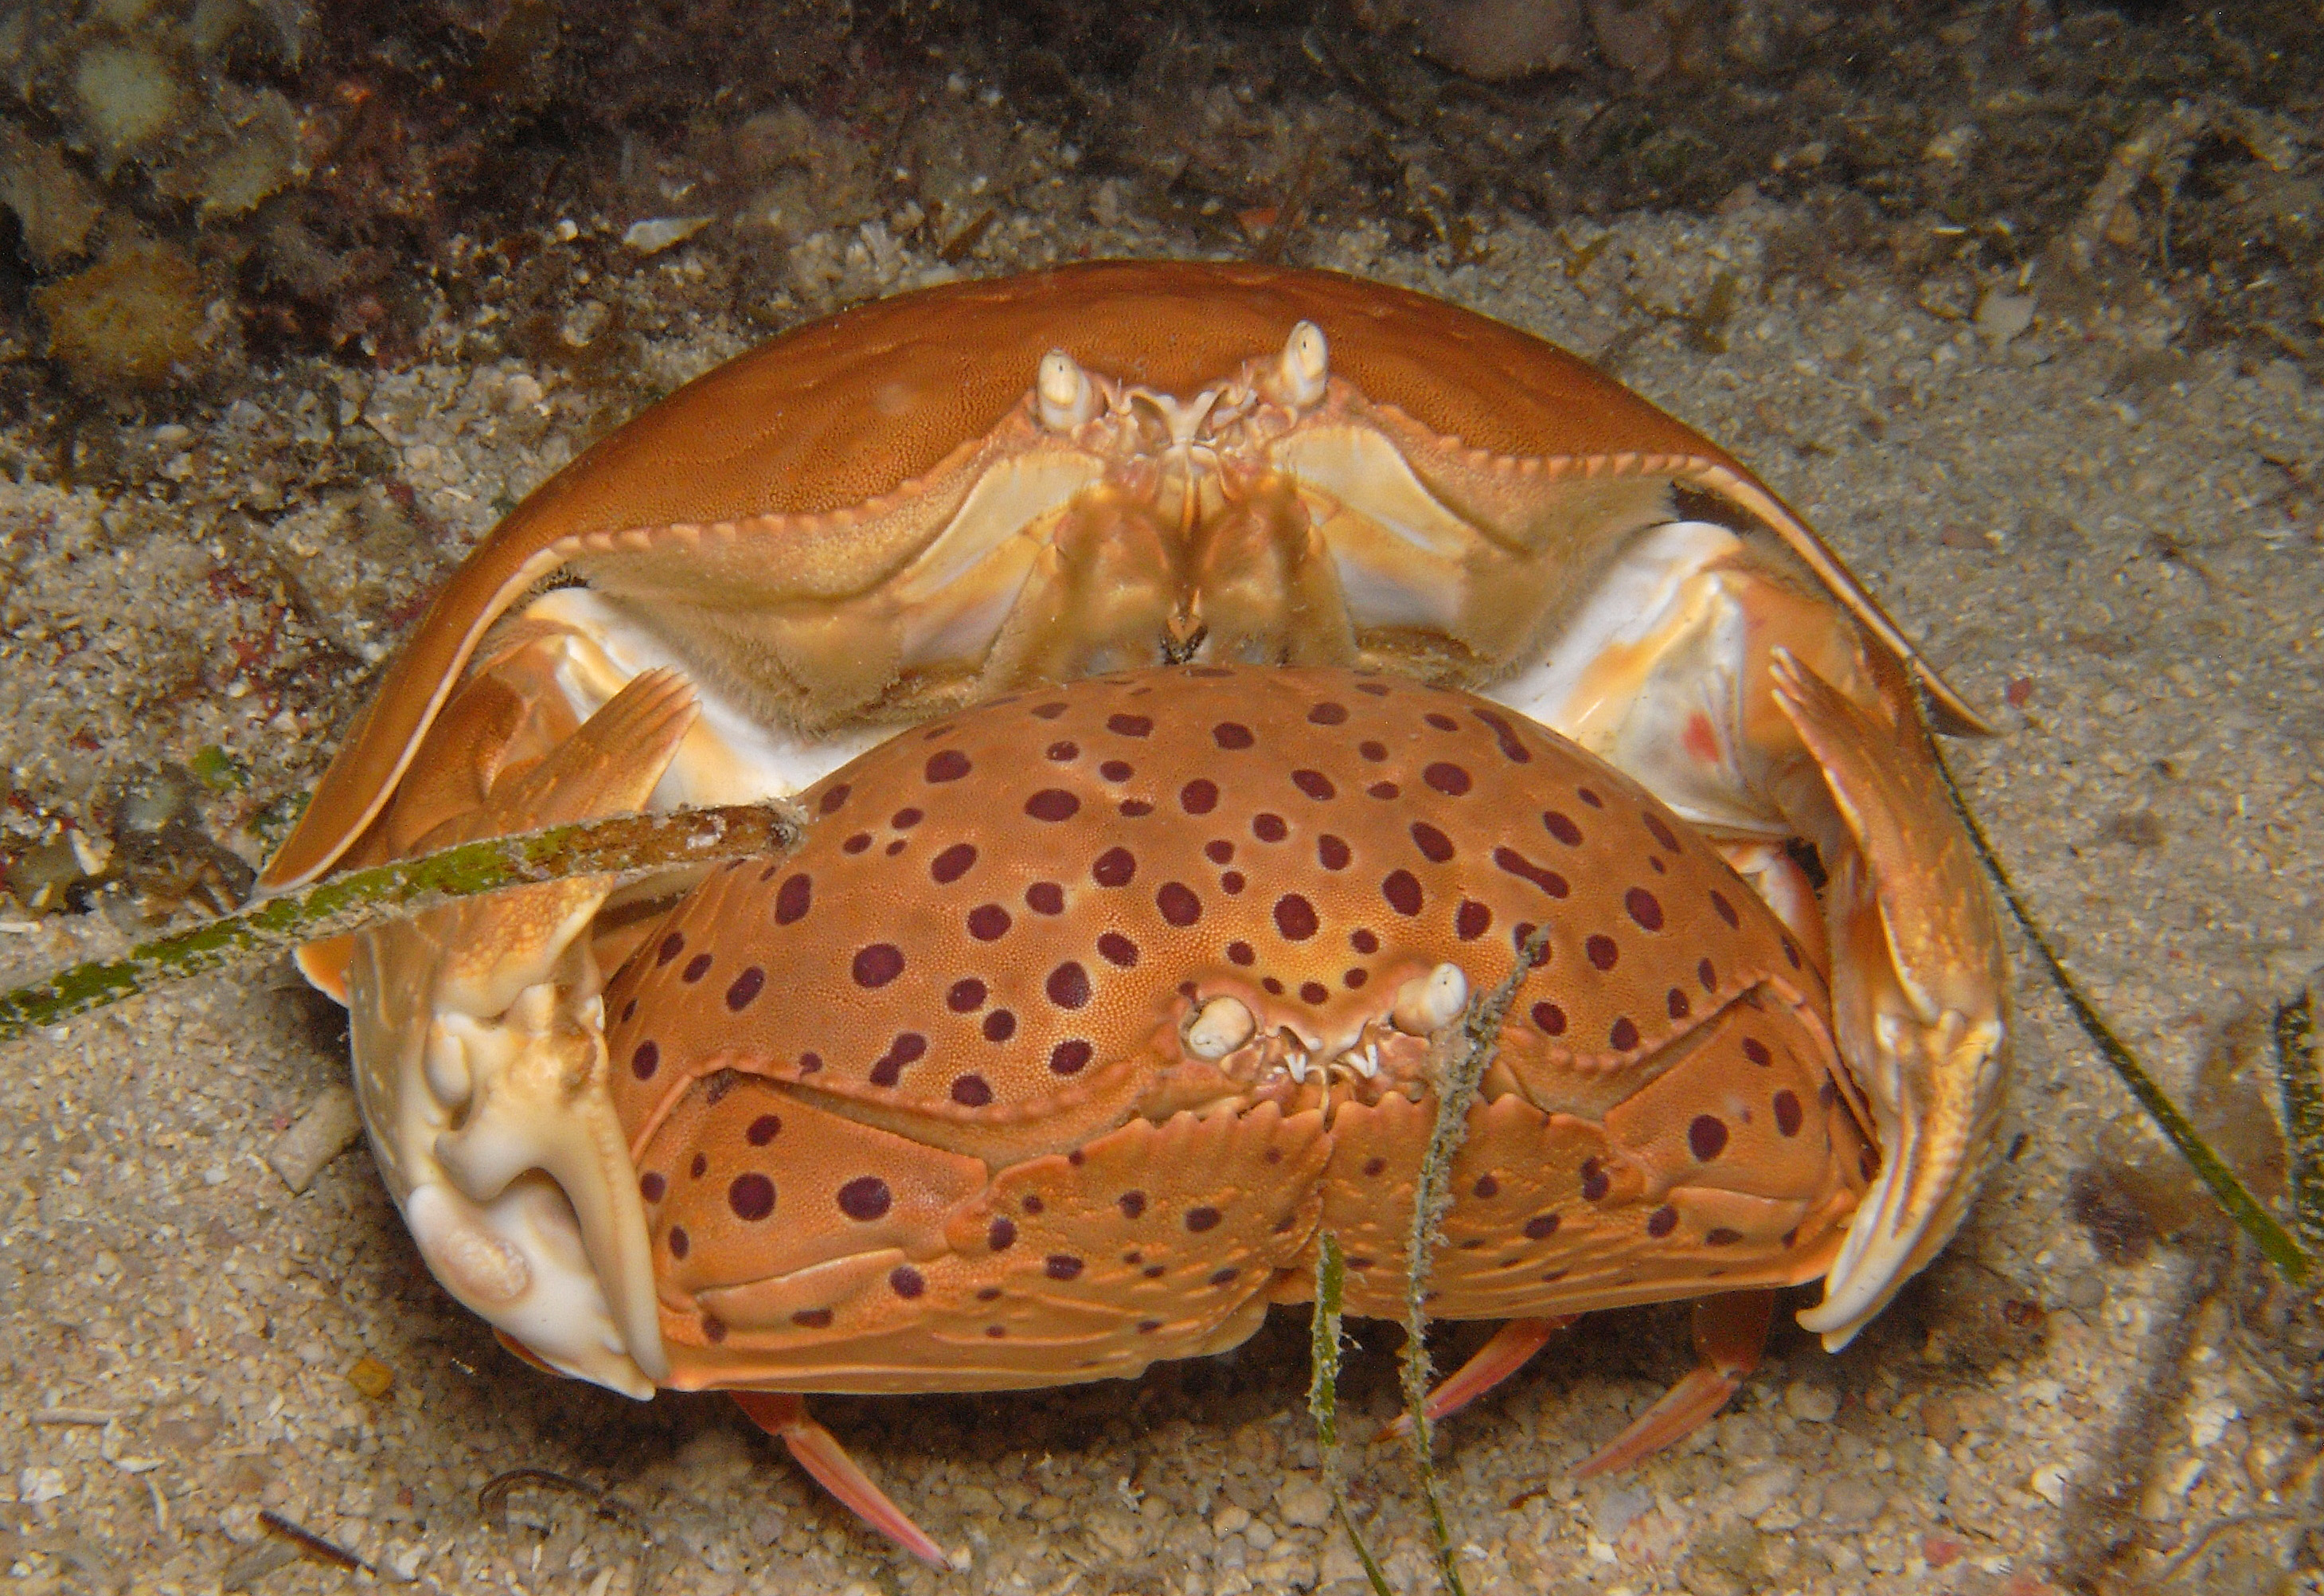 Giant Box Crab